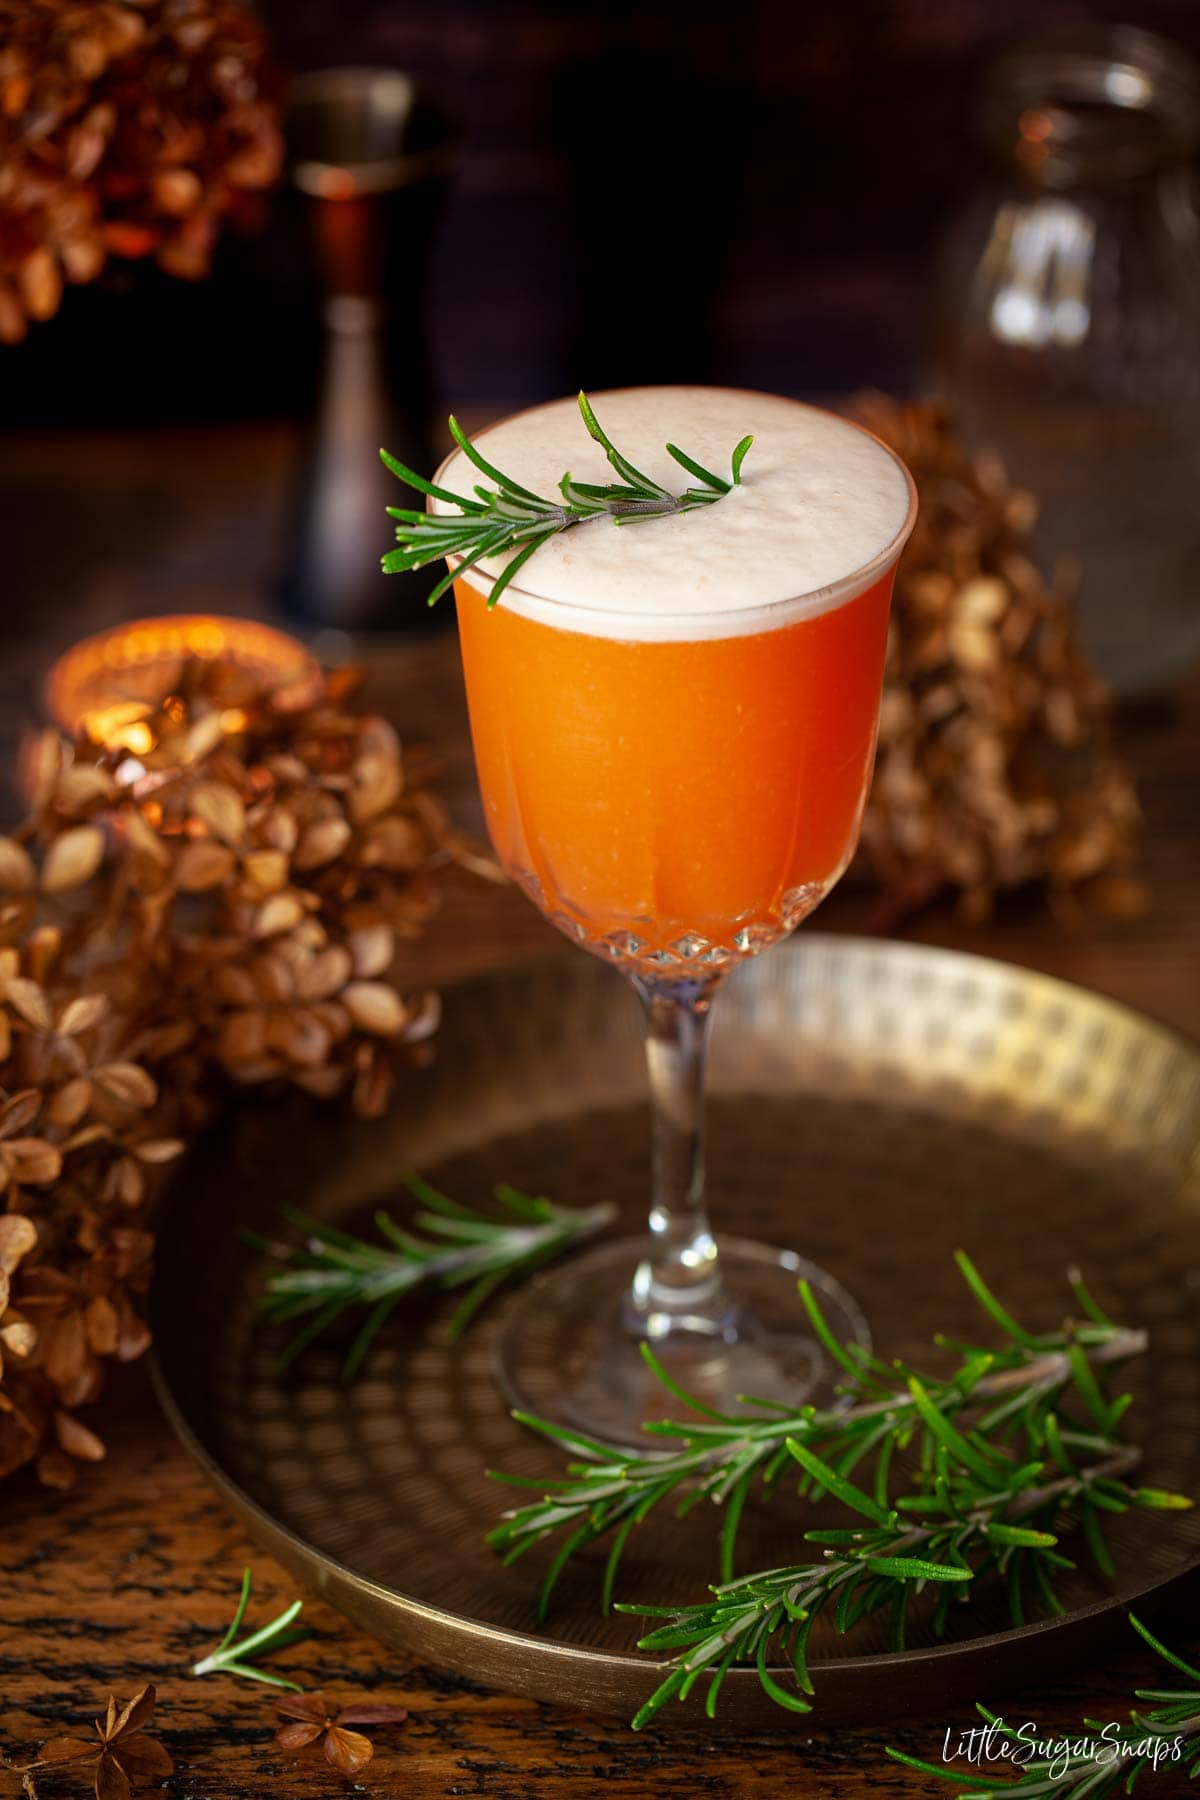 Aperol sour cocktail with egg foam and rosemary garnish